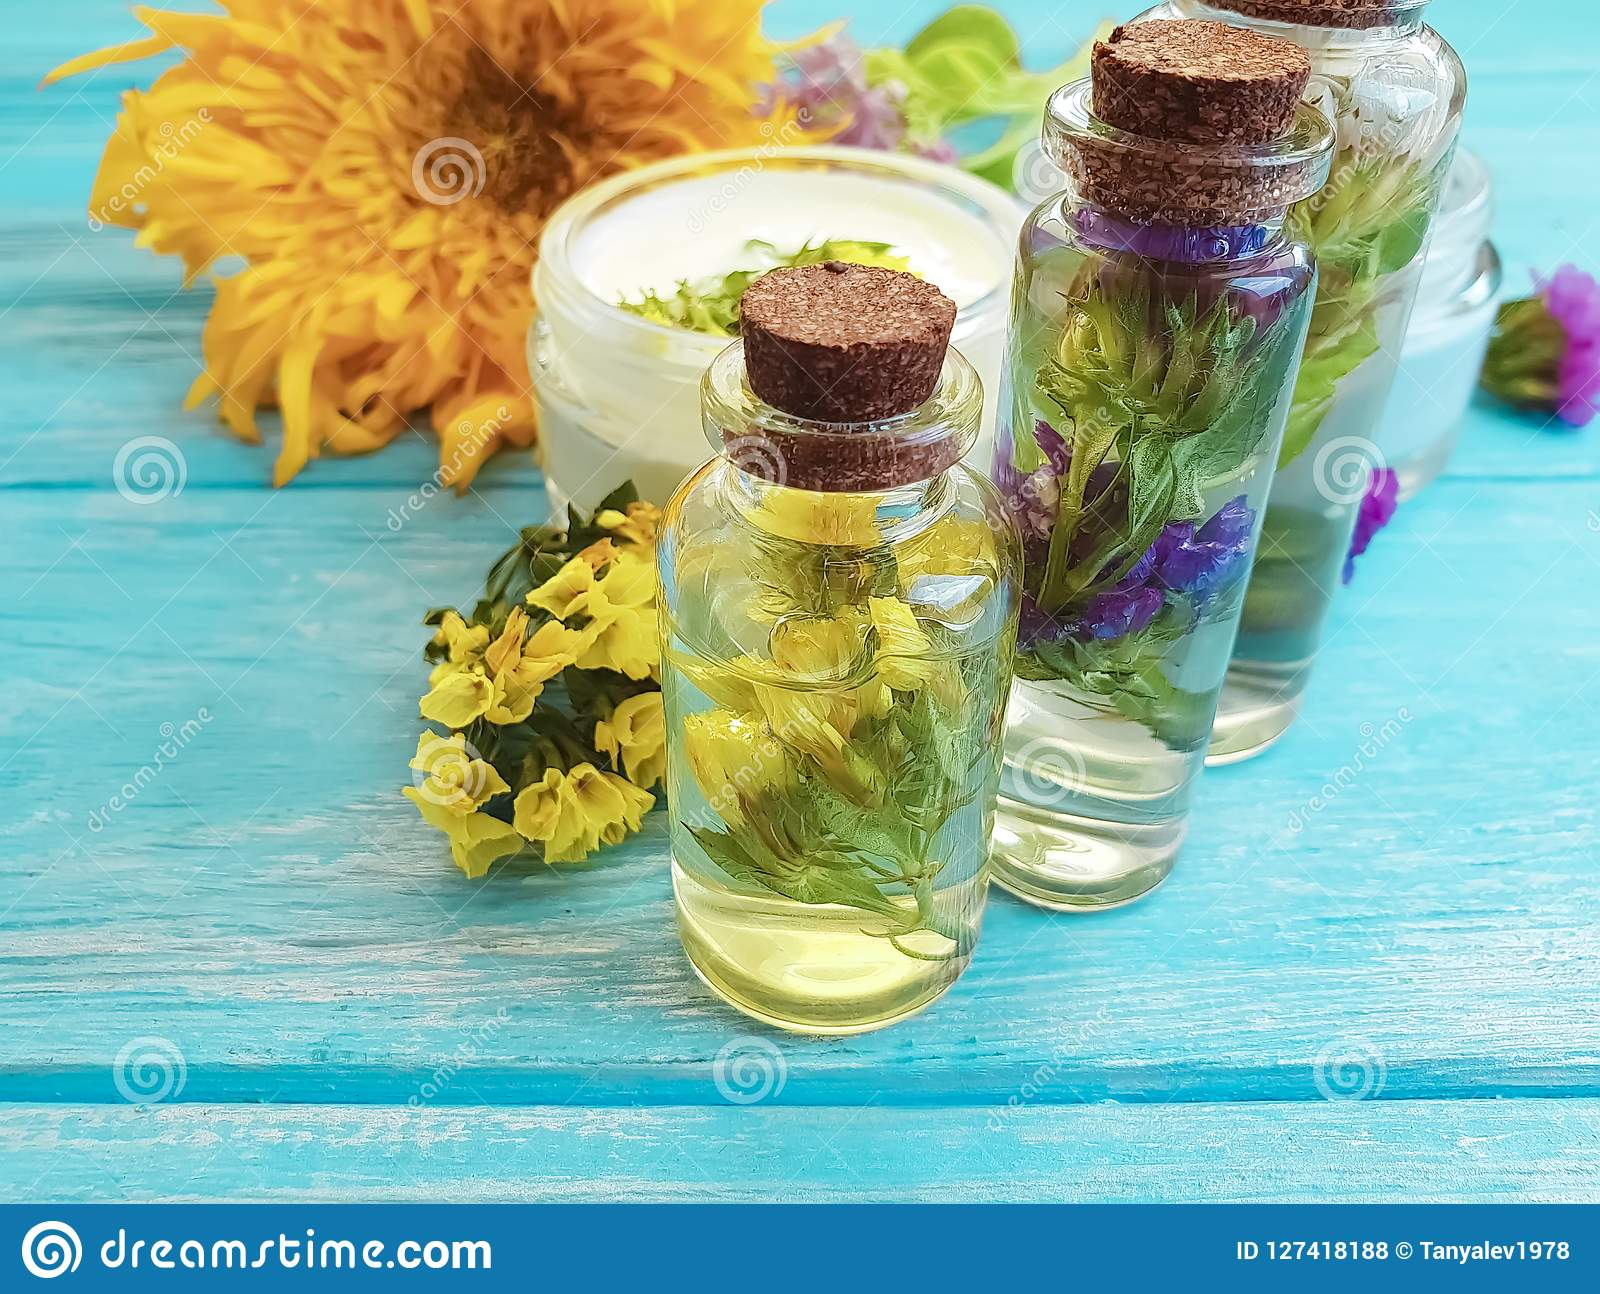 essence, cream cosmetic vintage scented aromatic relax alternative wellness natural flowers on a wooden